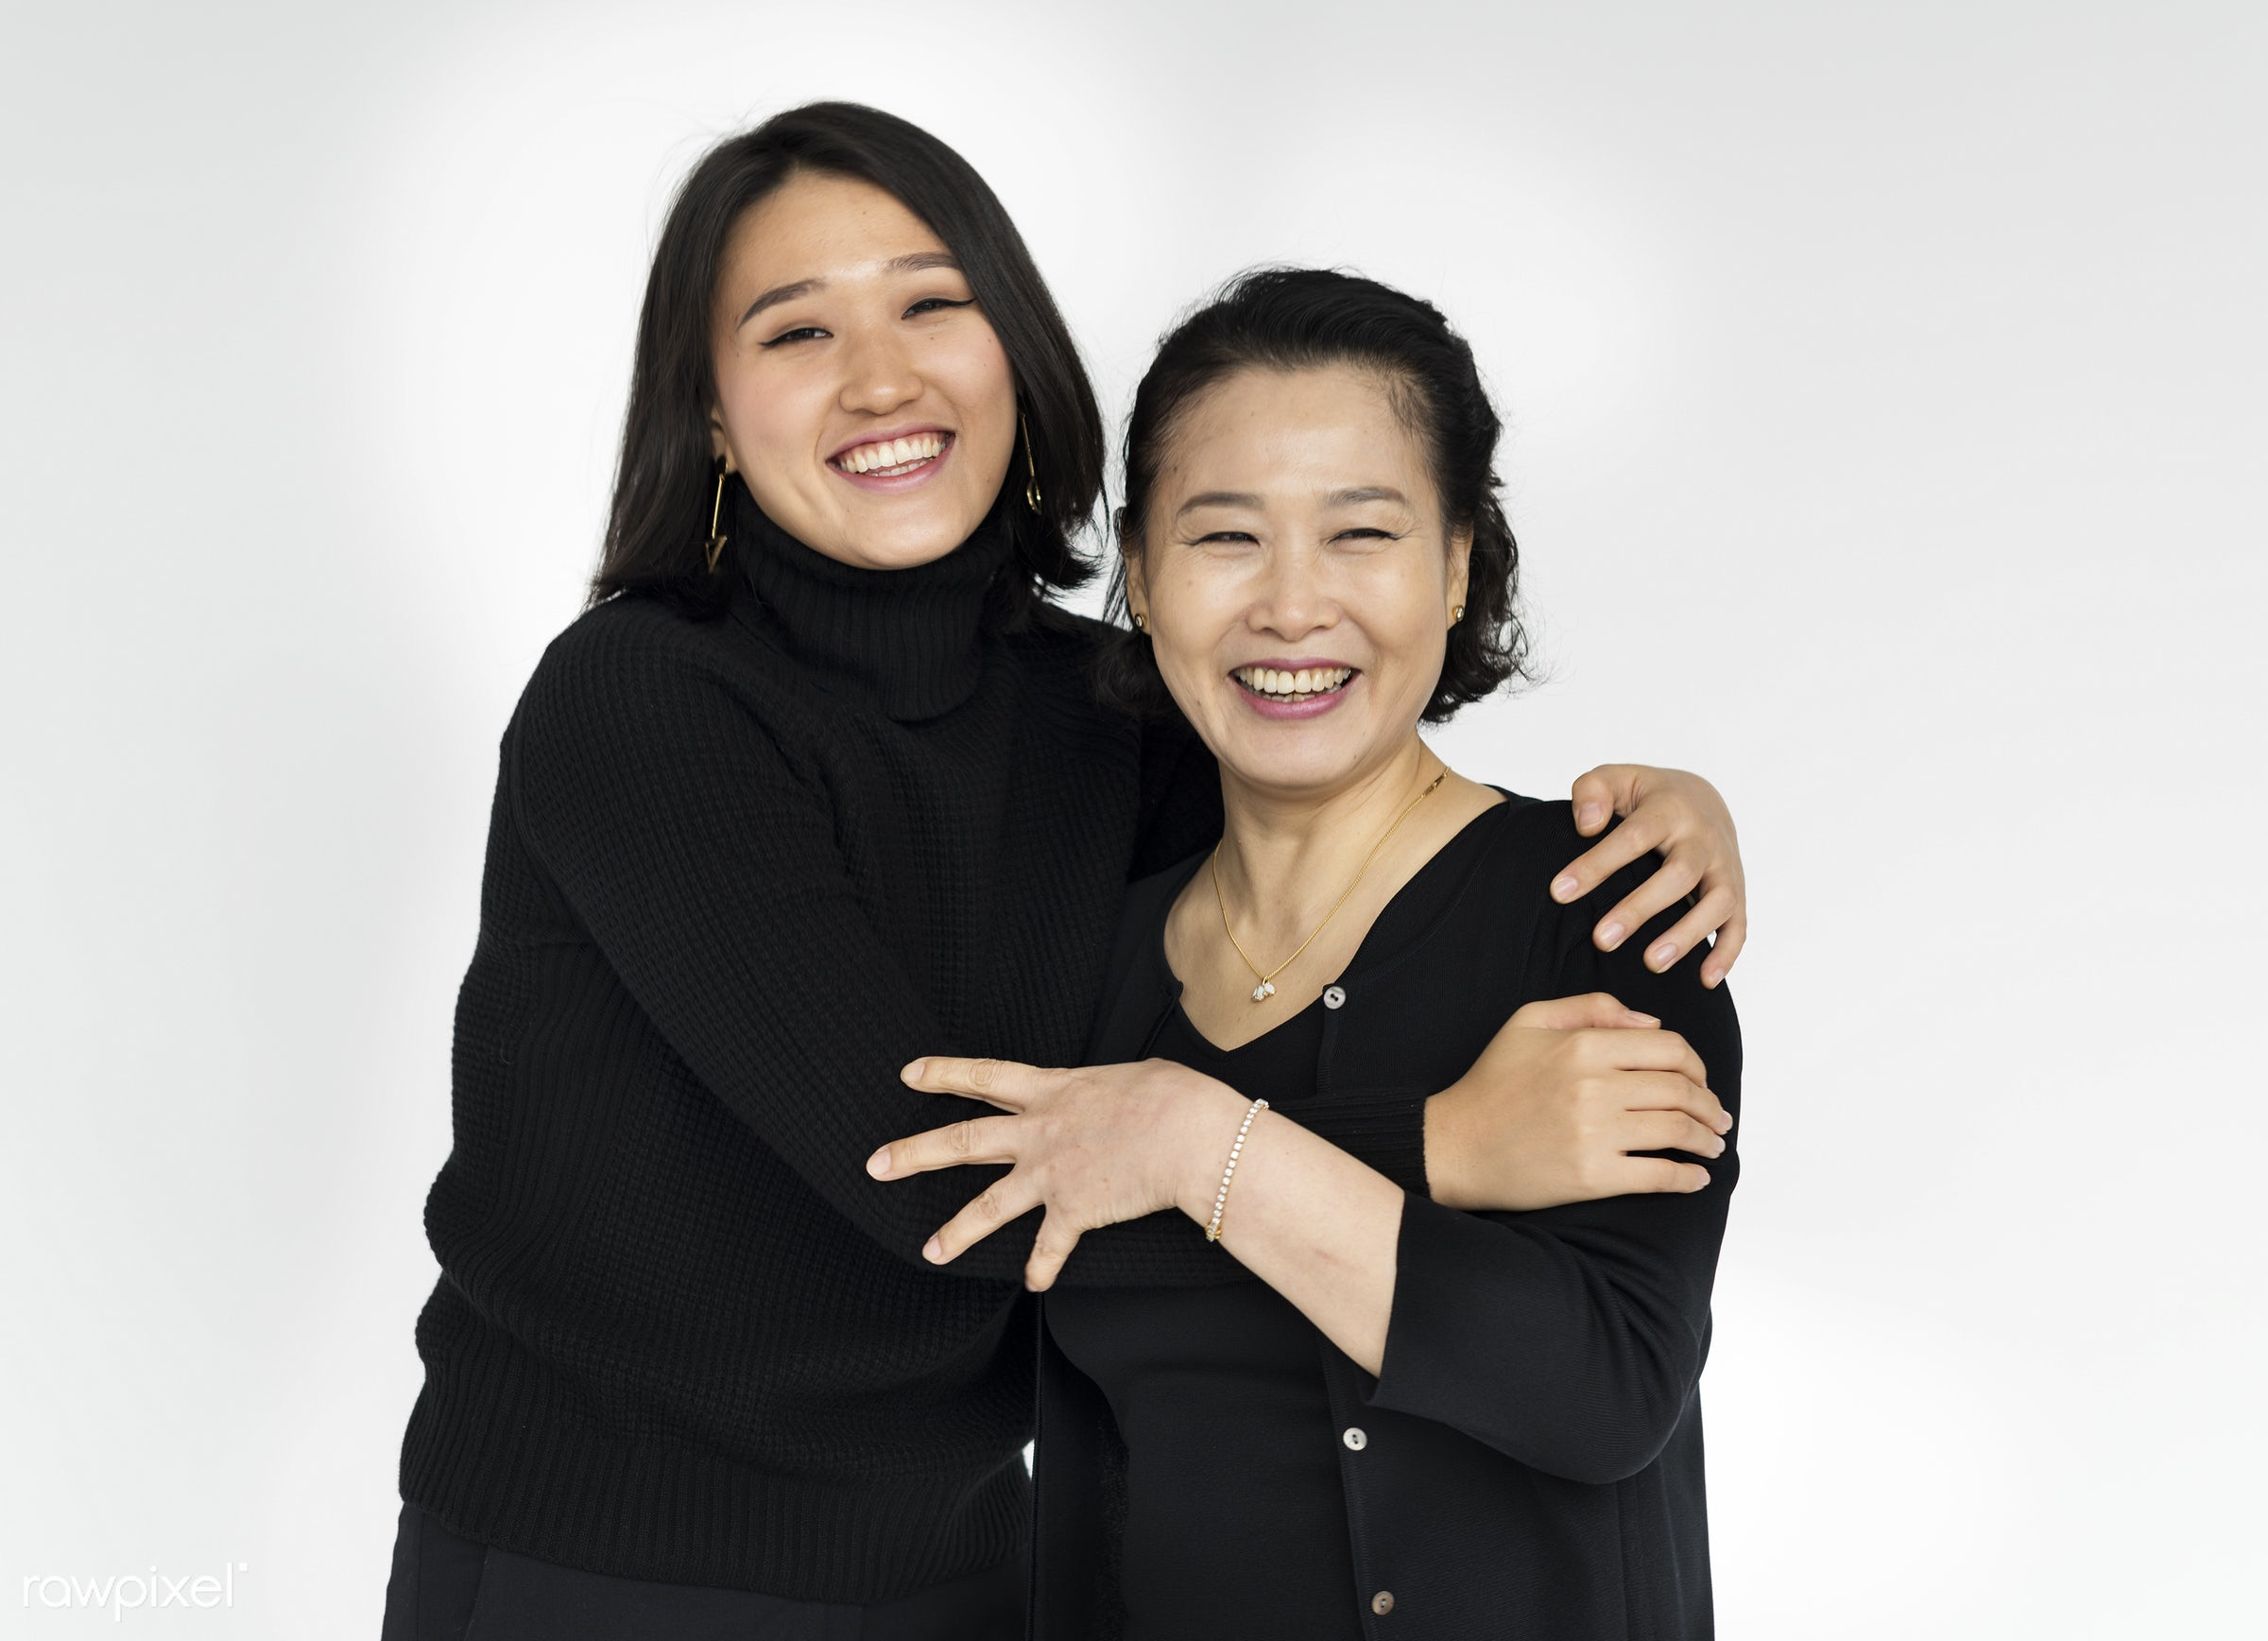 expression, studio, person, holding, people, together, asian, love, woman, family, care, embrace, cheerful, smiling,...